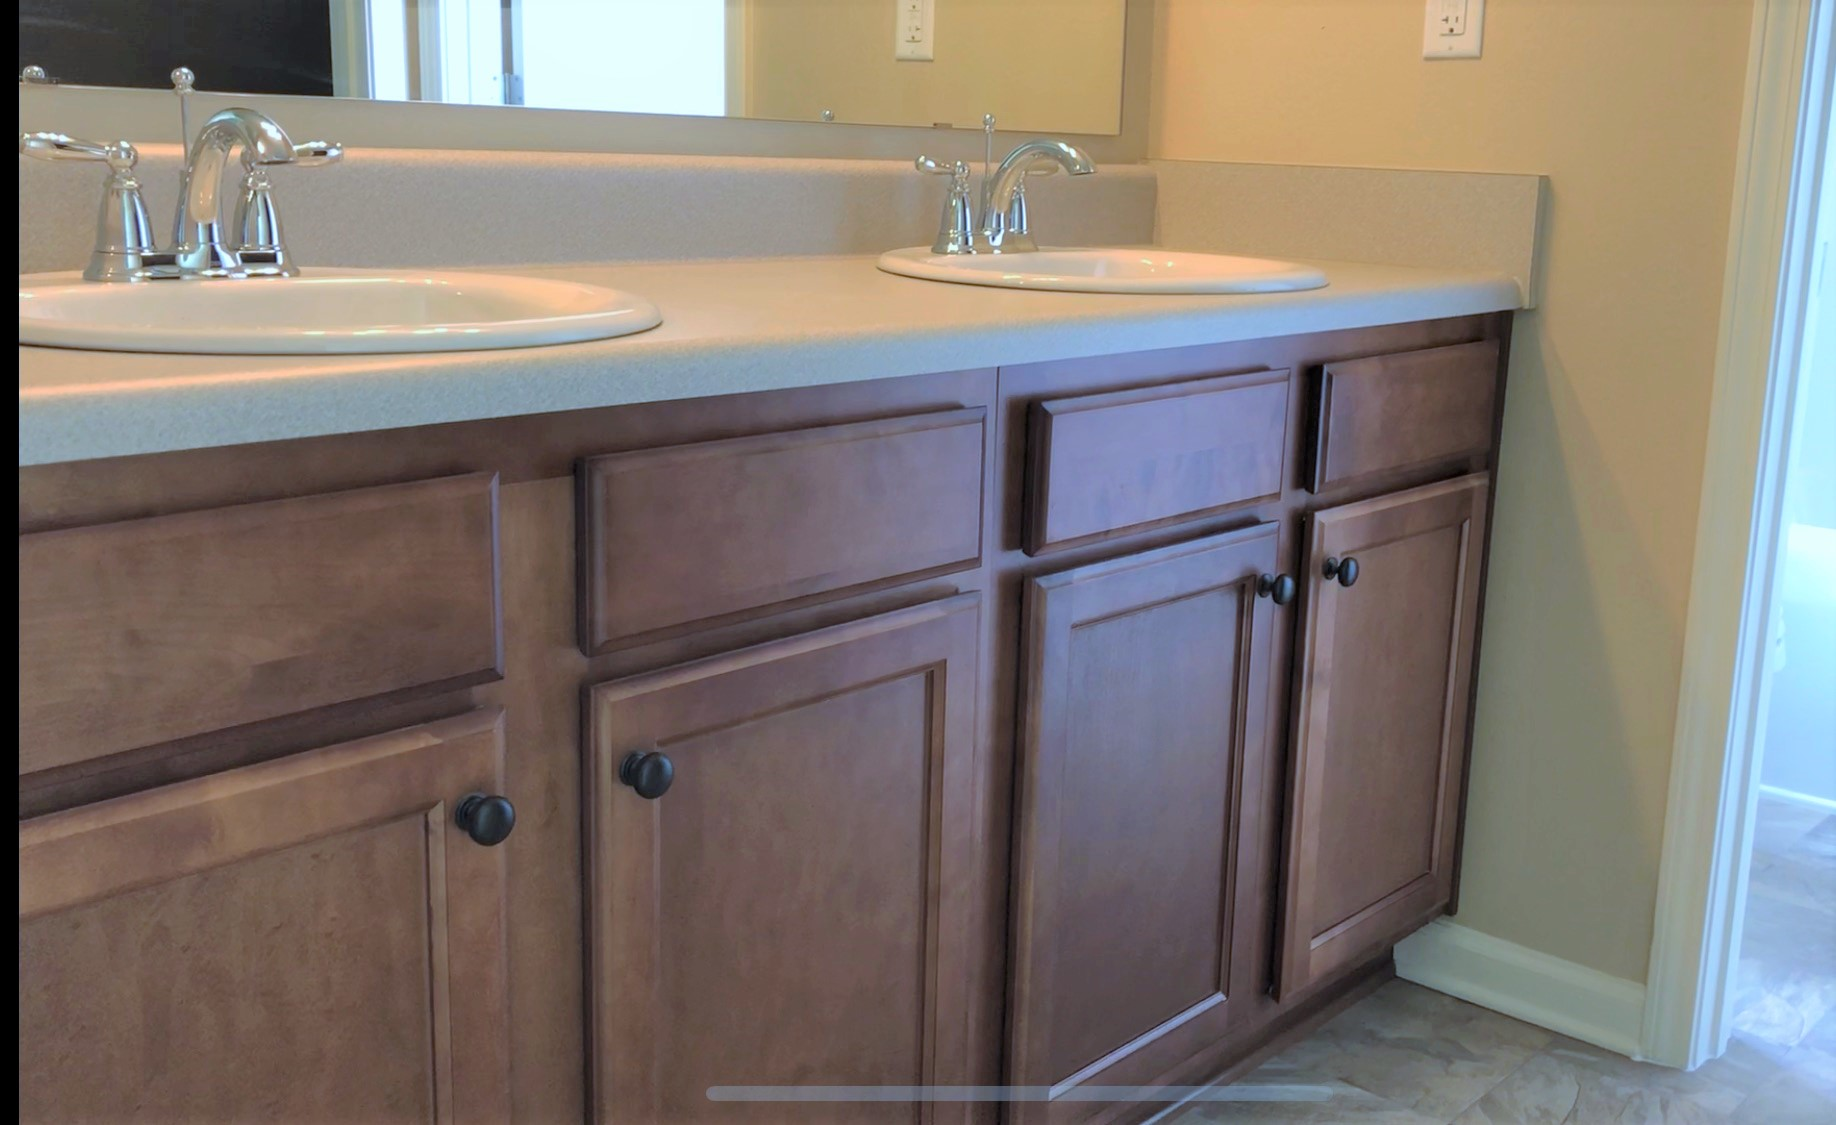 How do you get rid of mold on bathroom cabinets